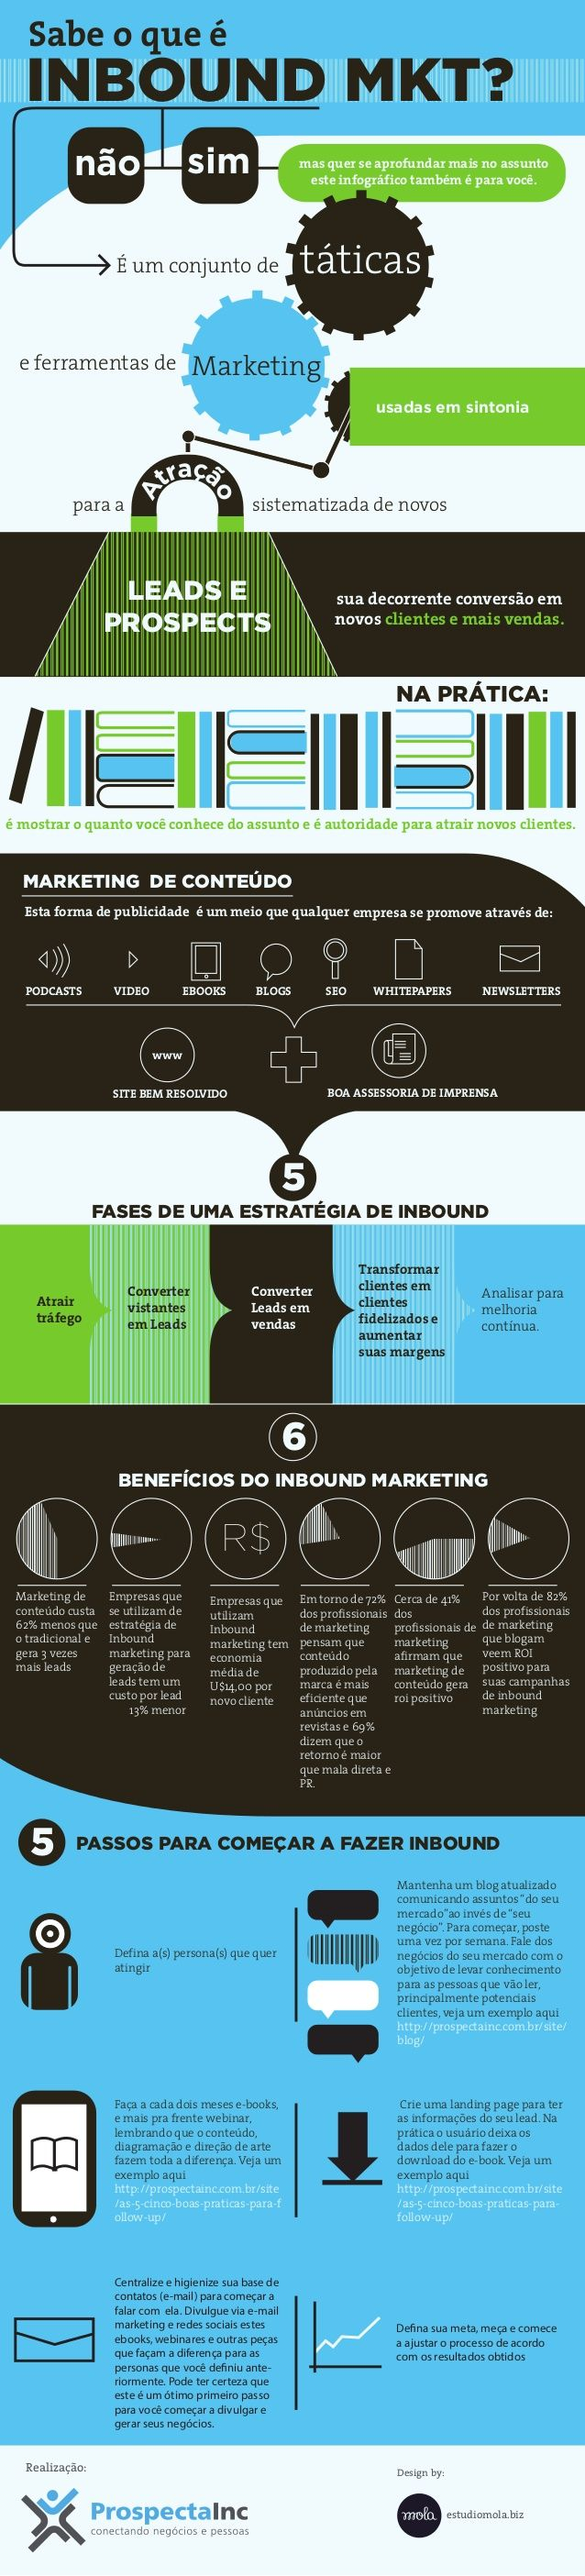 36 best infografico images on pinterest social media digital infogrfico com tudo sobre inbound marketing fandeluxe Image collections